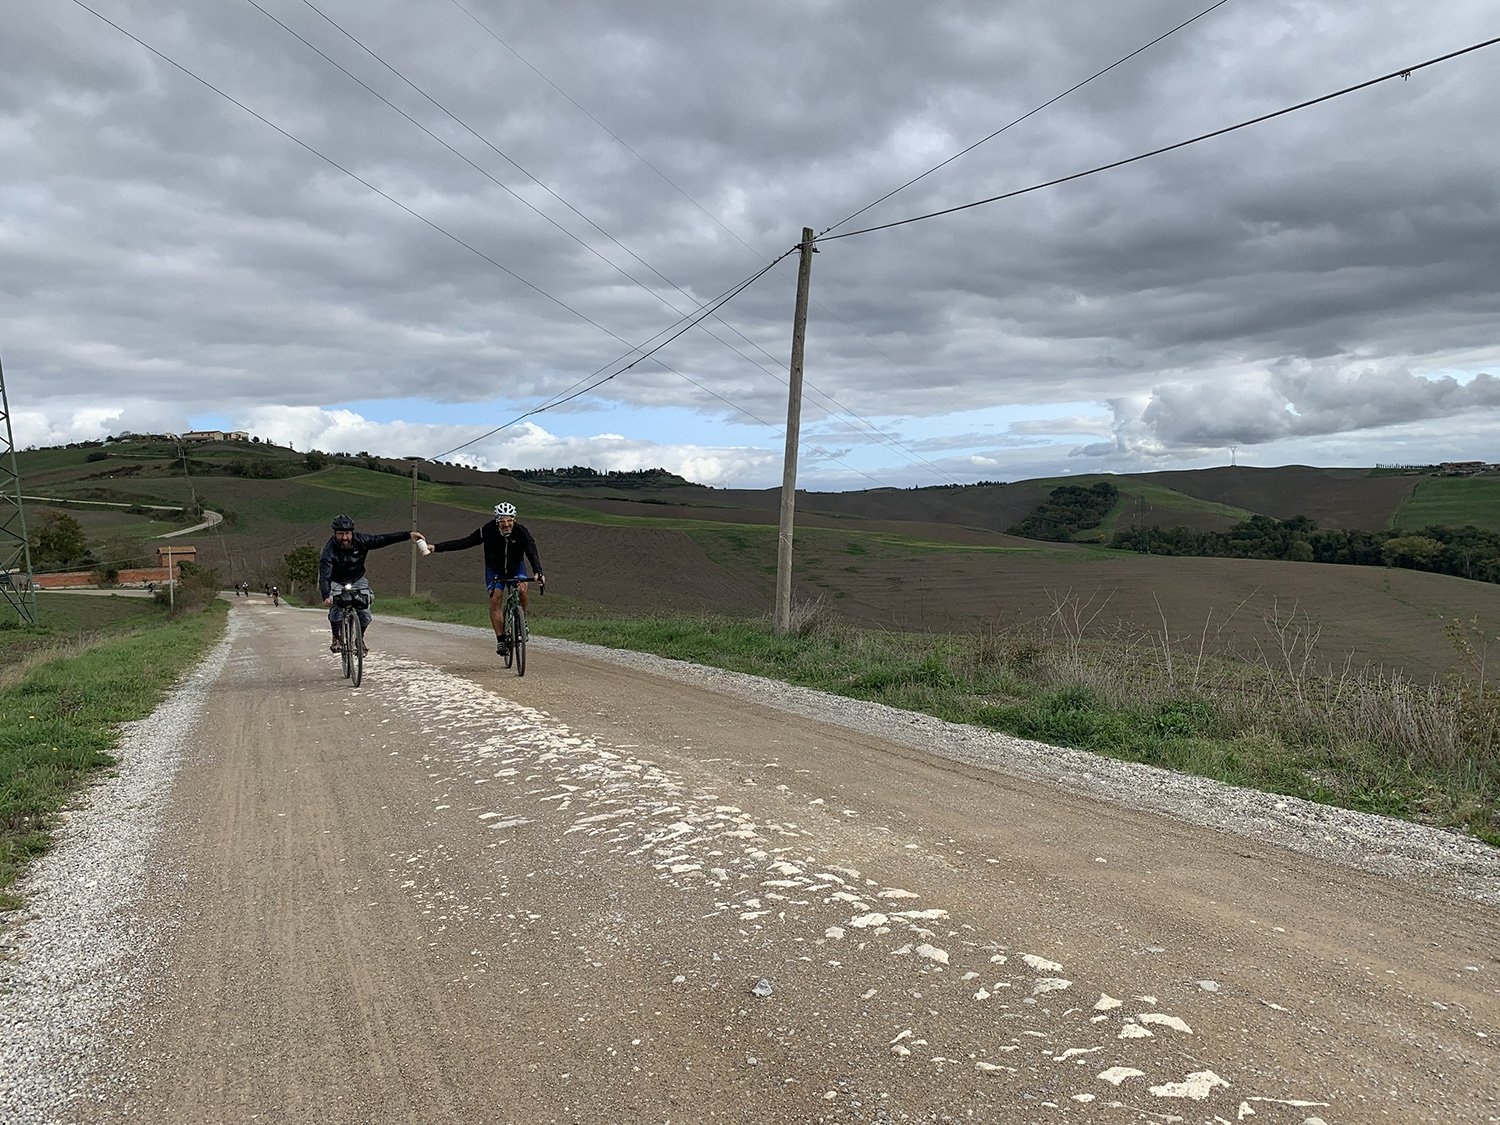 Cycling on the Eroica path